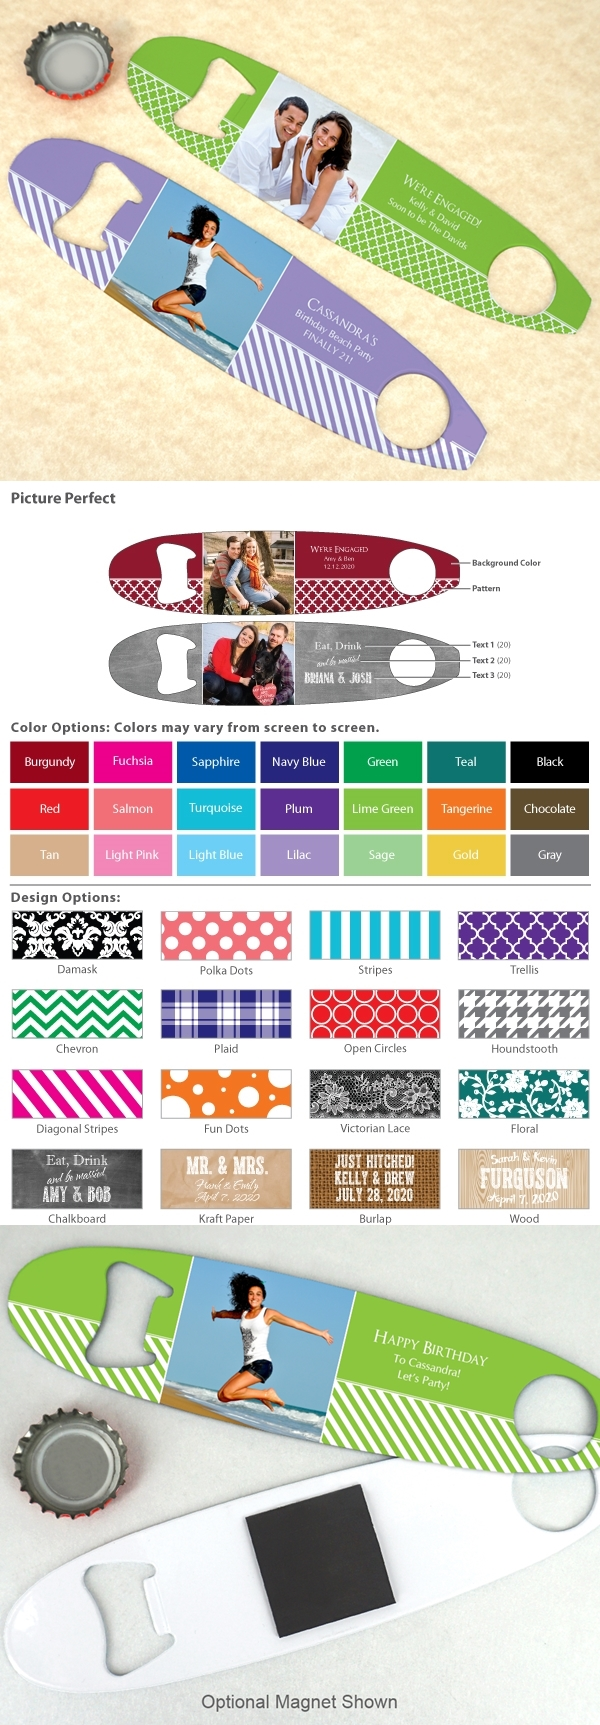 Custom Picture Perfect Photo Stainless Steel Surfboard Bottle Opener